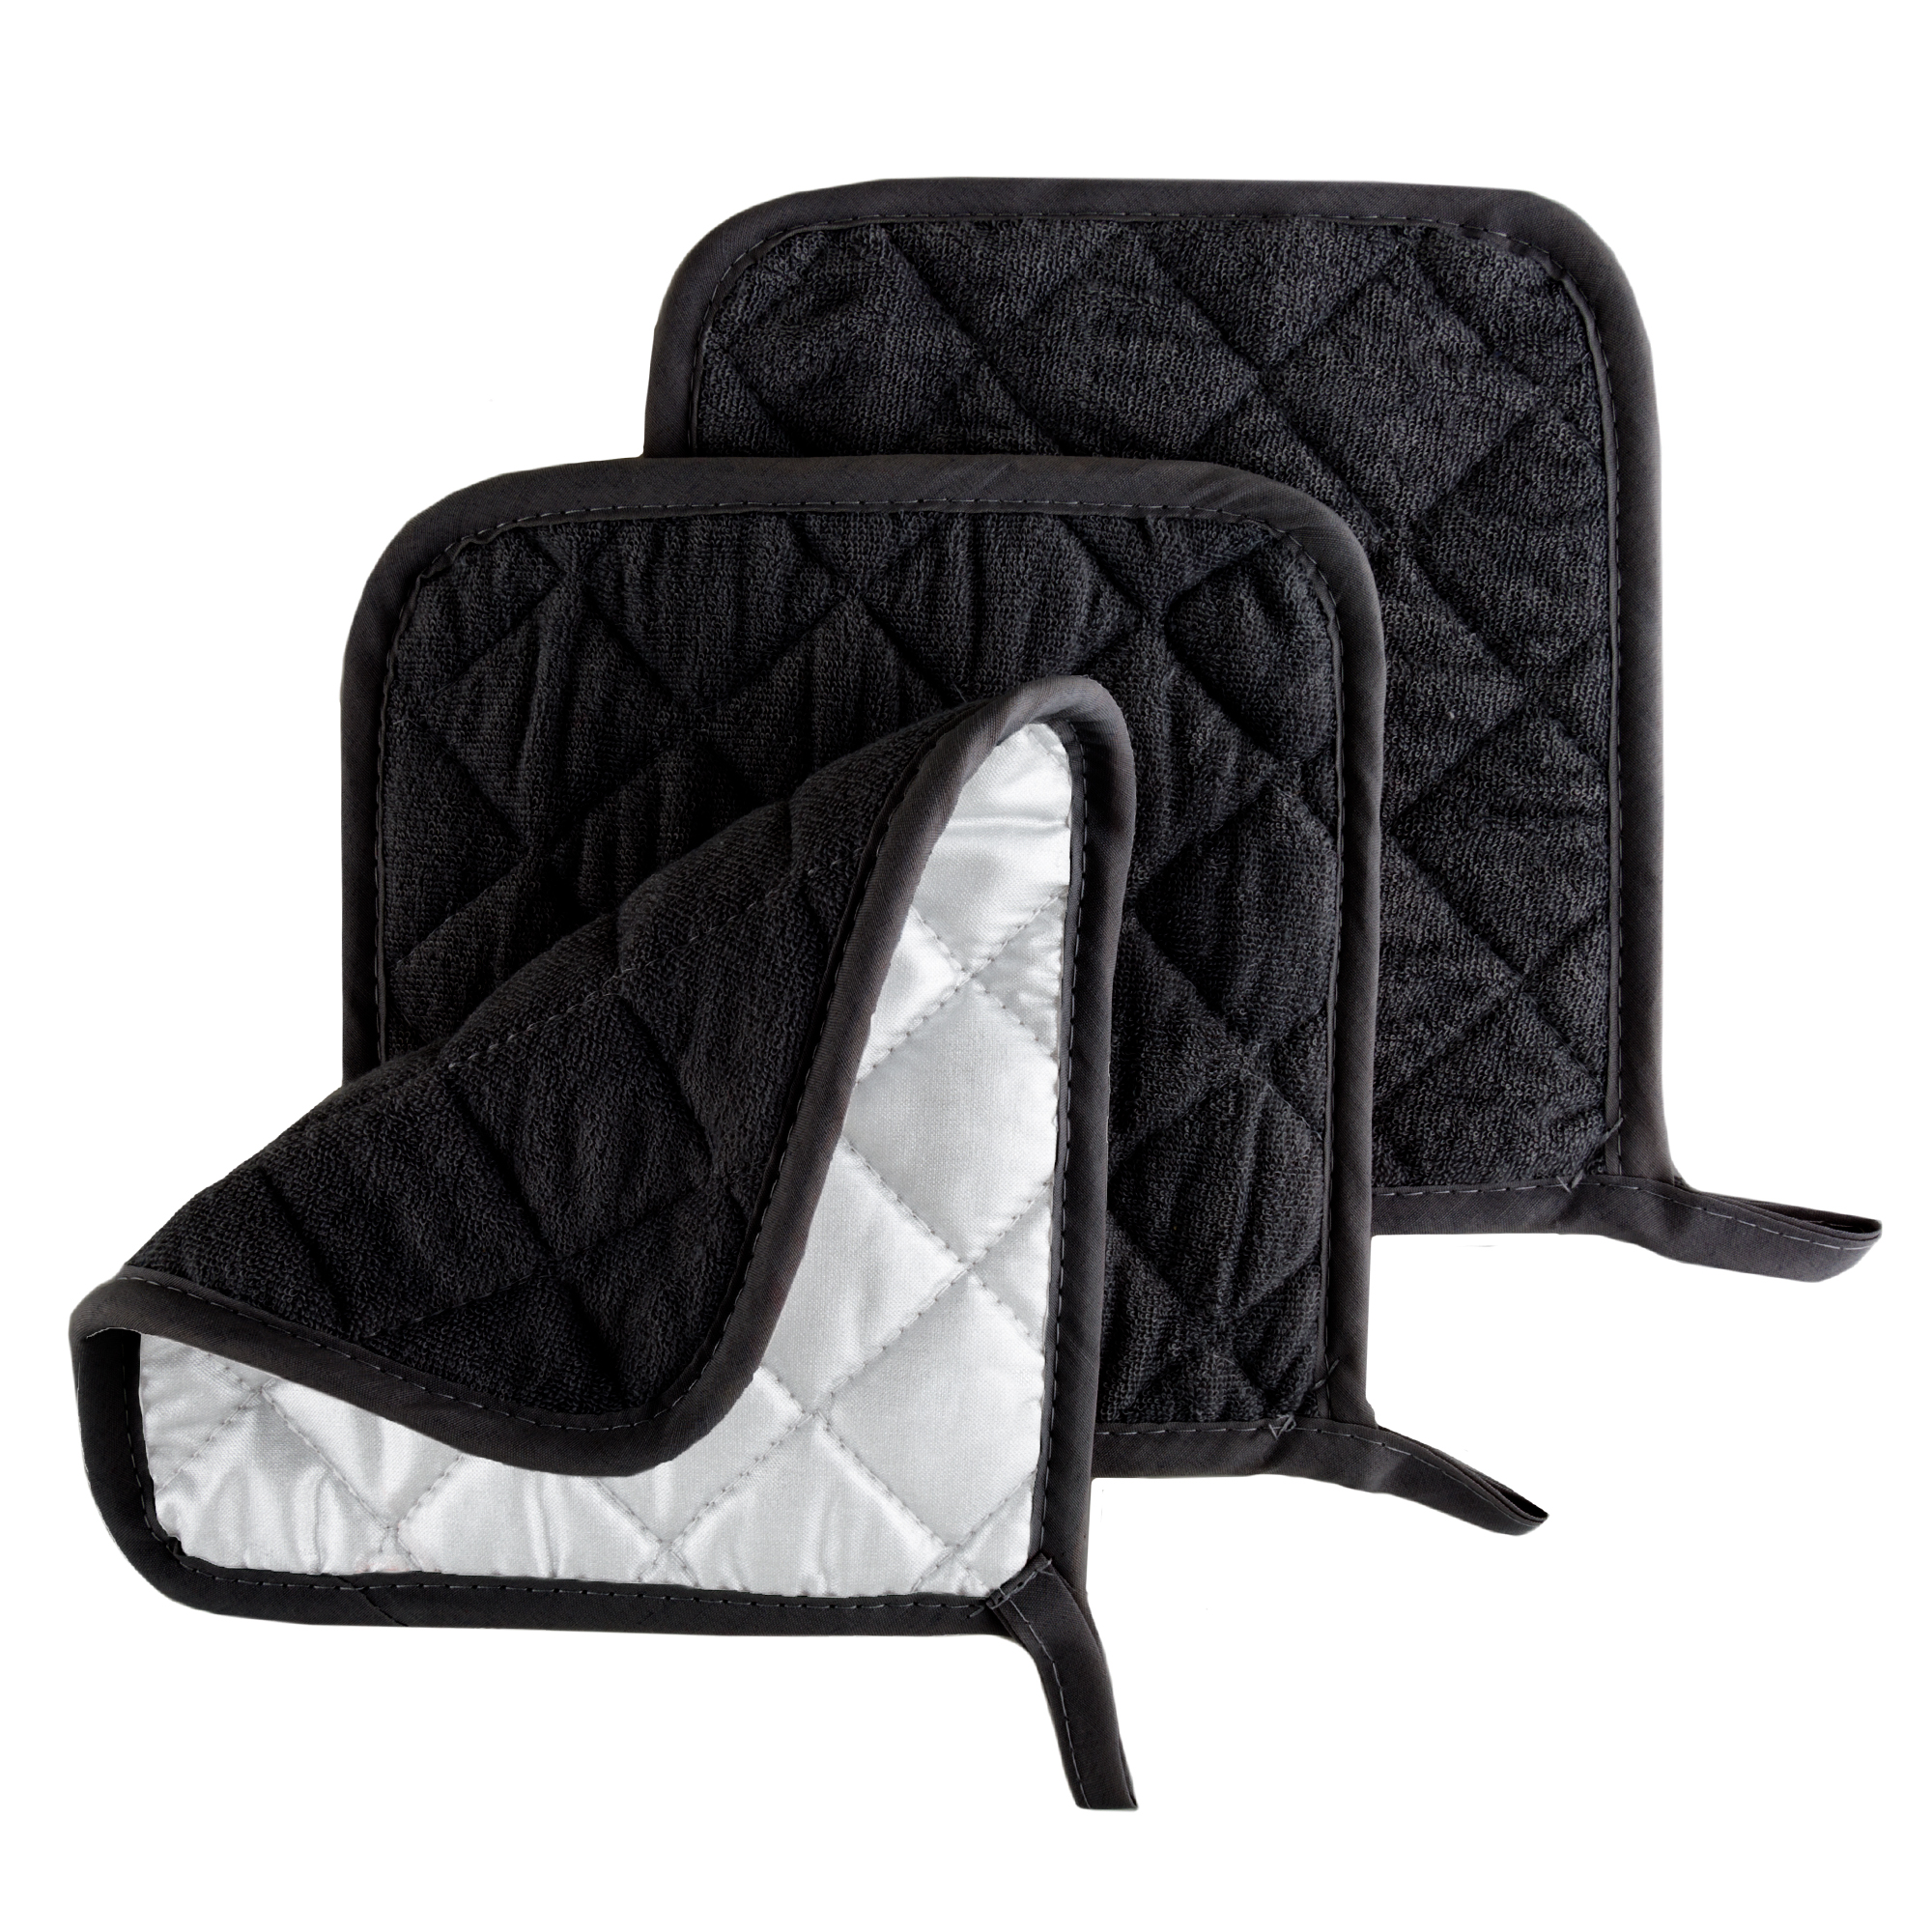 Pot Holder Set, 3 Piece Set Of Heat Resistant Quilted Cotton Pot Holders By Somerset Home, Multiple Colors Available